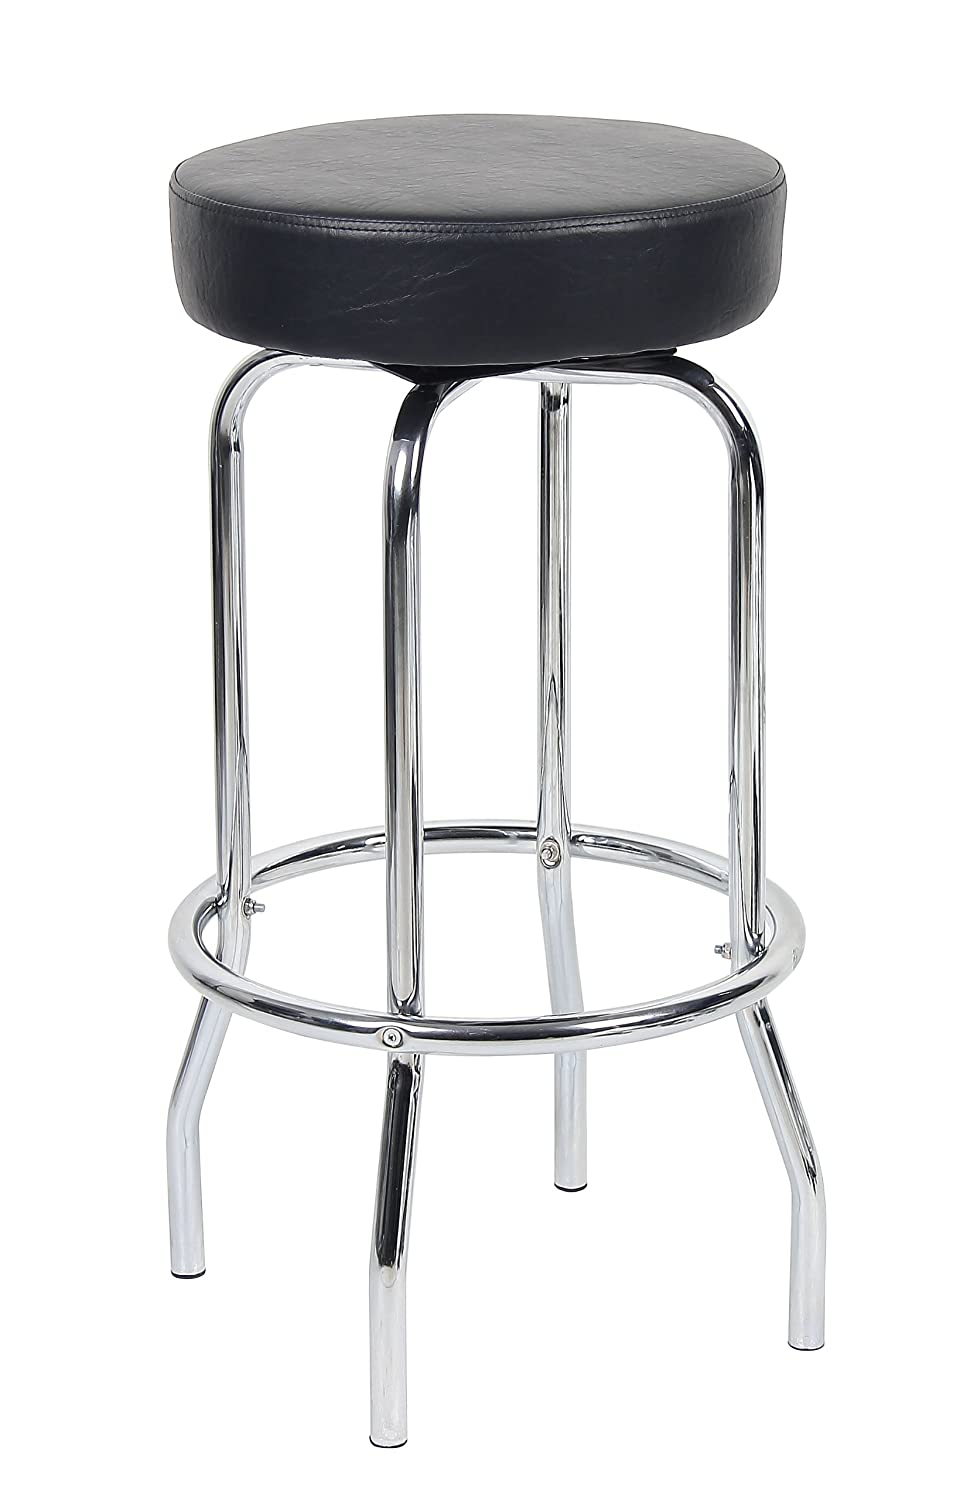 Amazon.com Boss Office Chairs B229 Bar Stool by Norstar Kitchen u0026 Dining  sc 1 st  Amazon.com & Amazon.com: Boss Office Chairs B229 Bar Stool by Norstar: Kitchen ... islam-shia.org